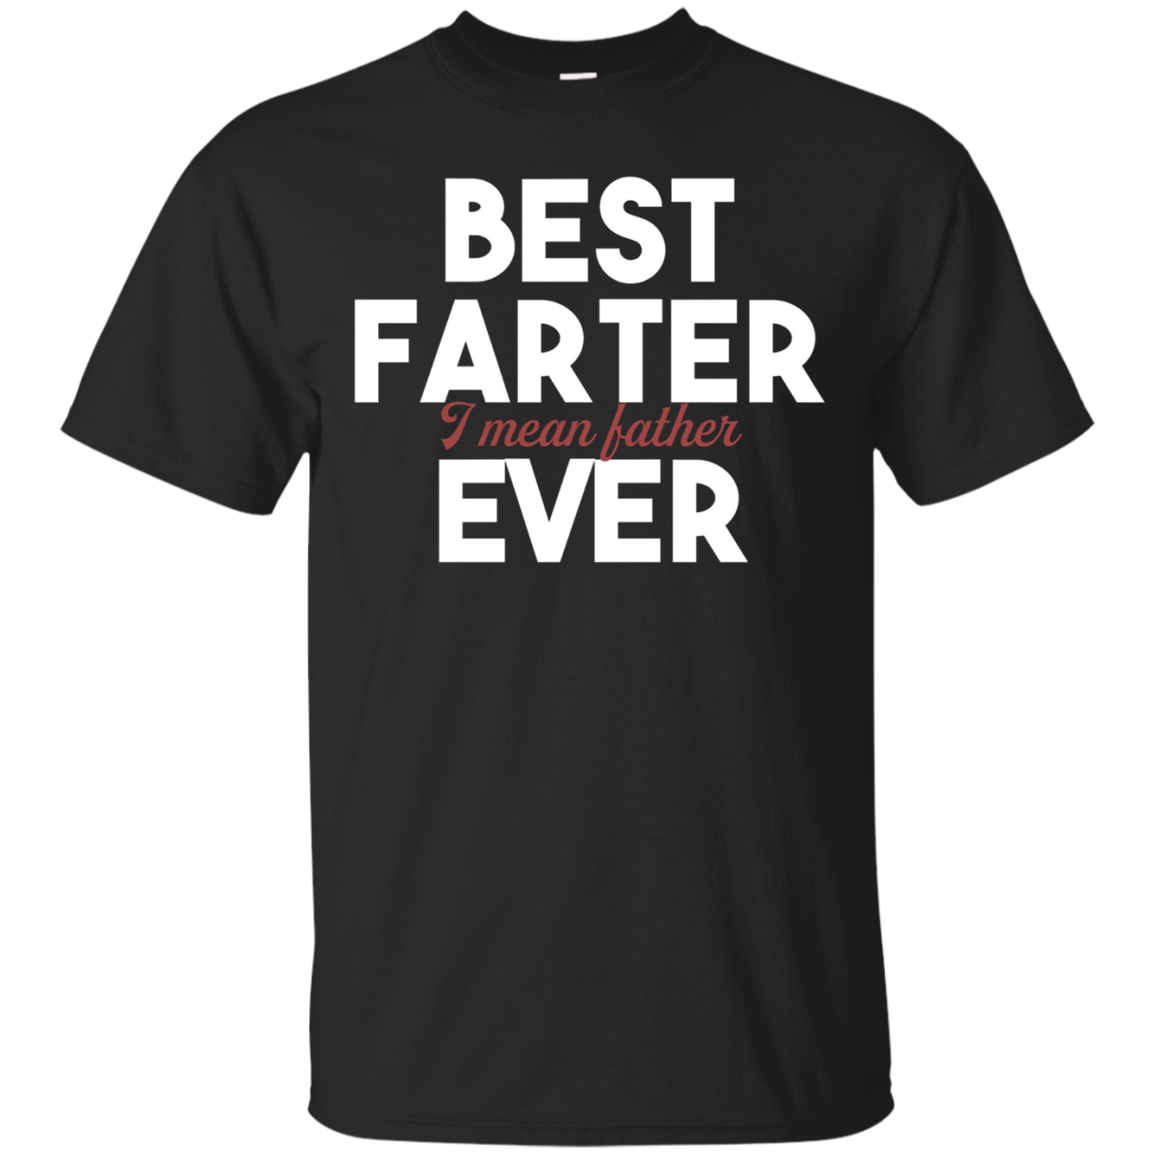 Best Farter Ever Best Father Ever Christmas Gift For Dad Fun